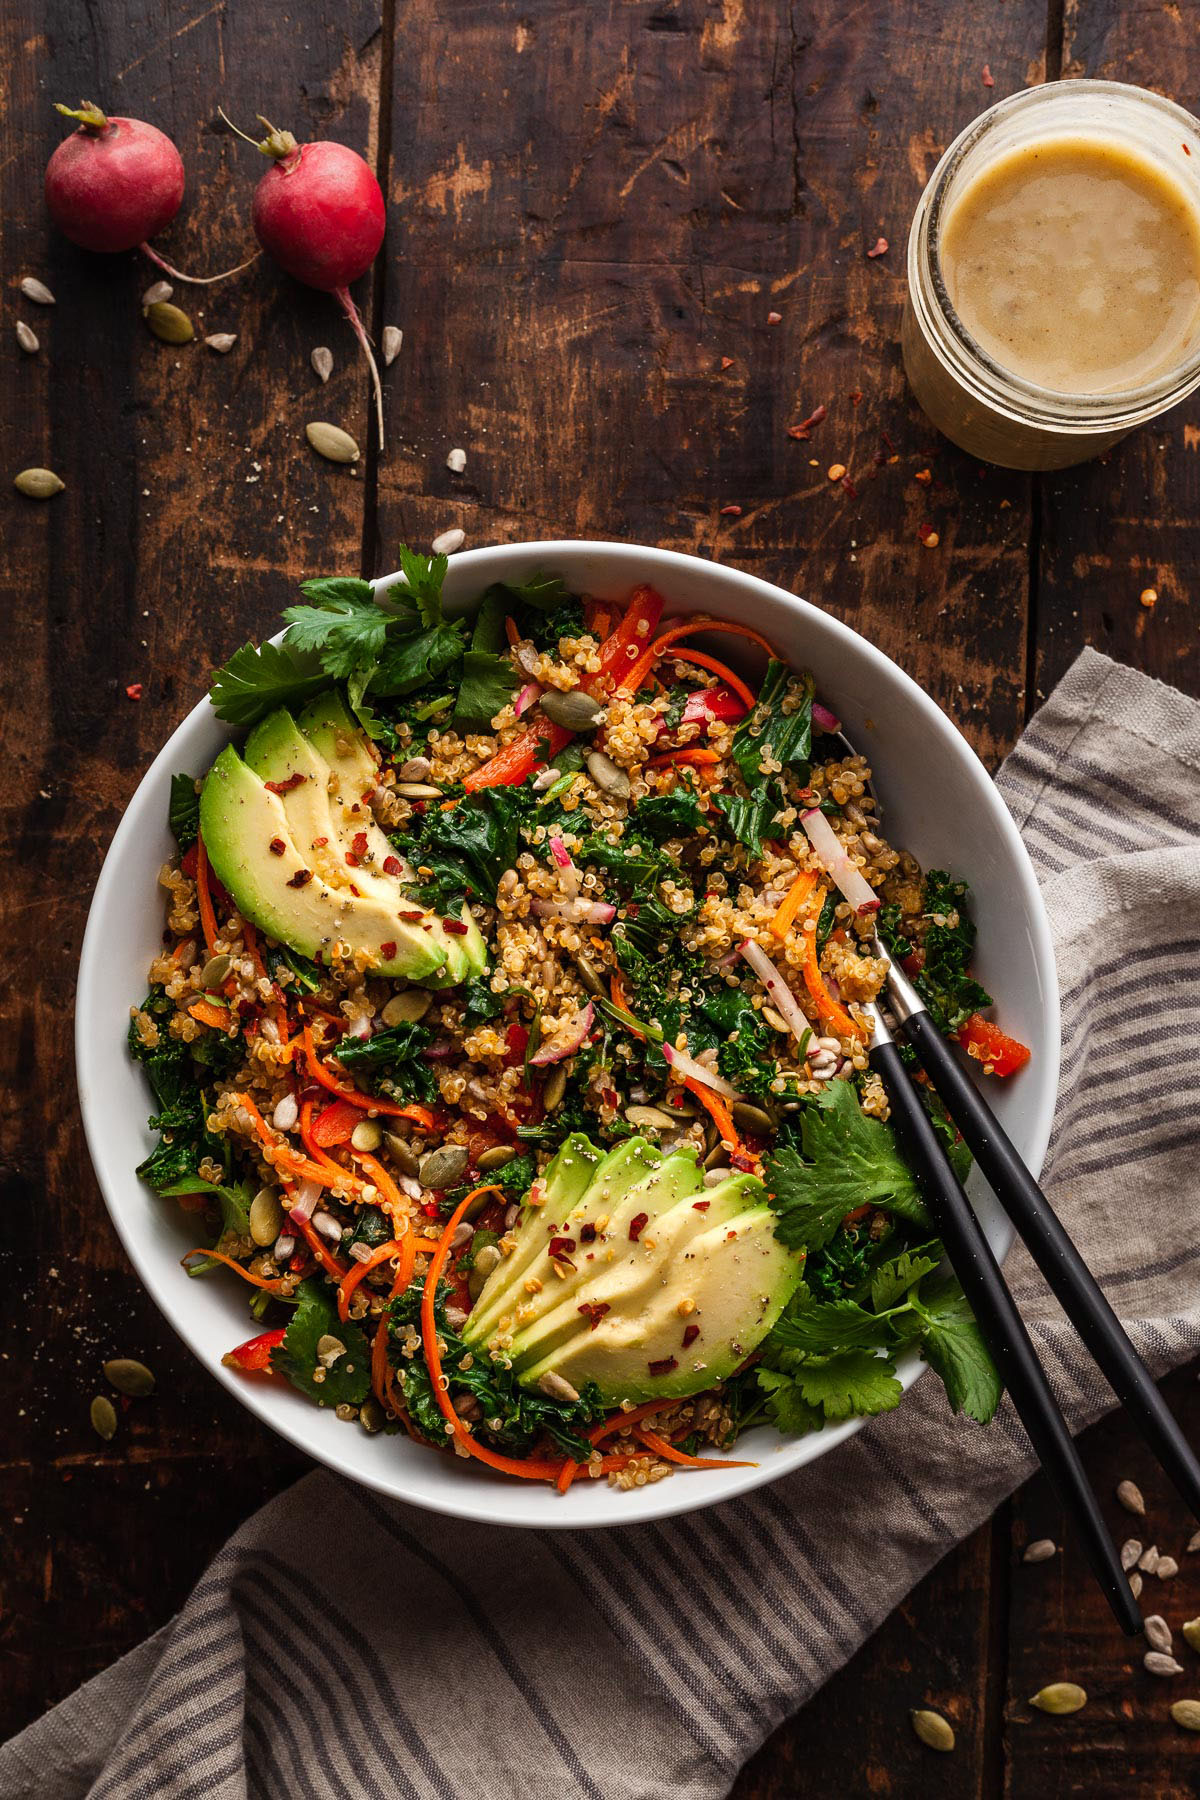 a bowl of warm kale and quinoa salad on a wood table